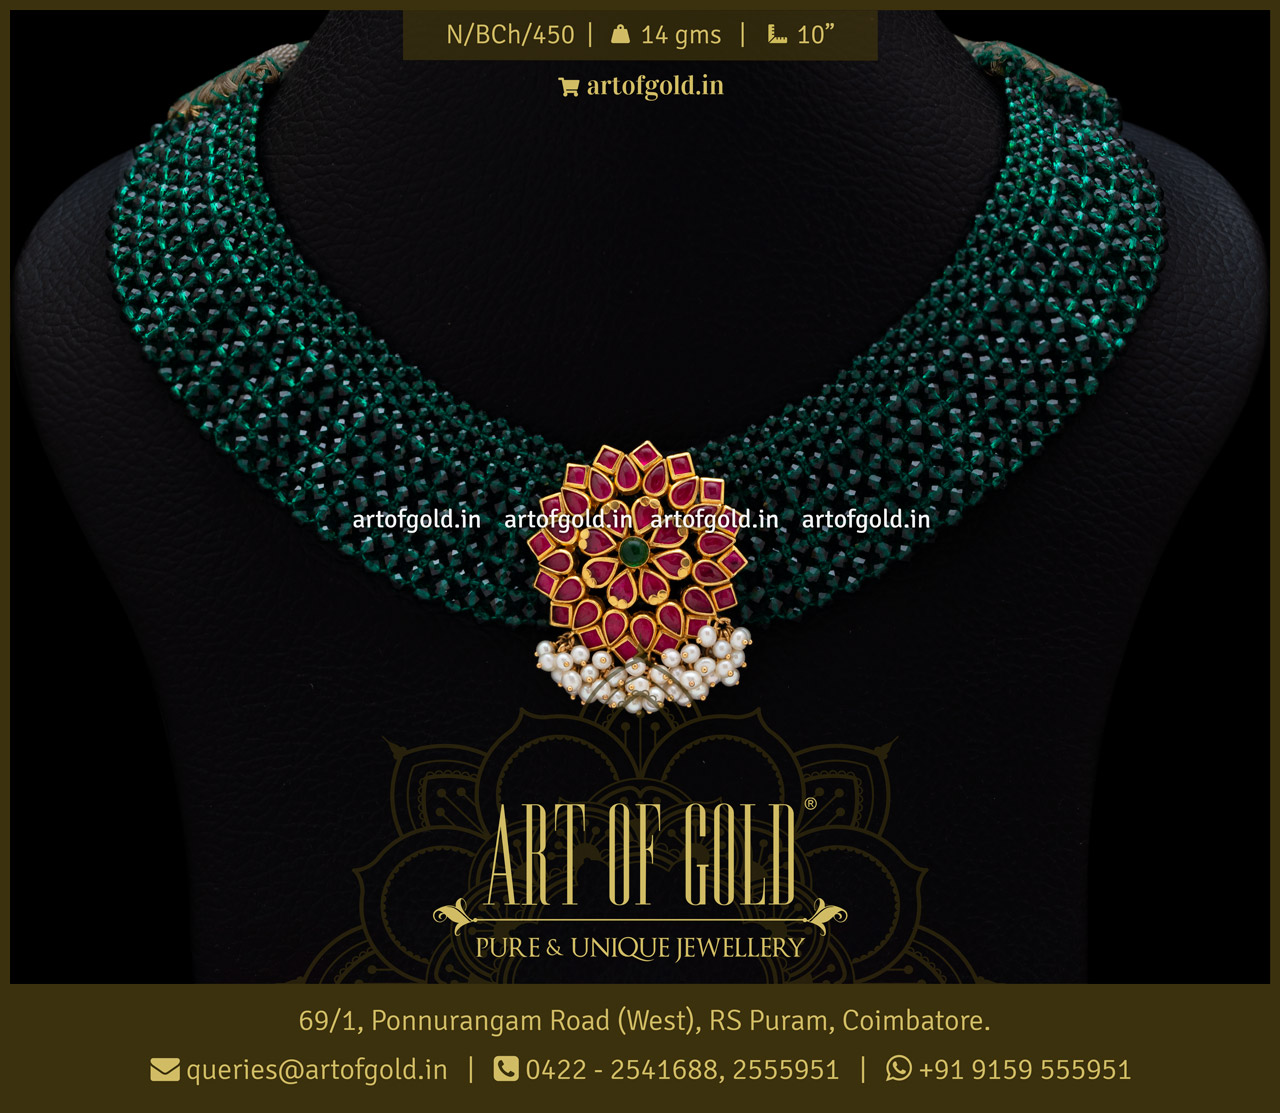 Green Beads Necklace with Gold Pendant